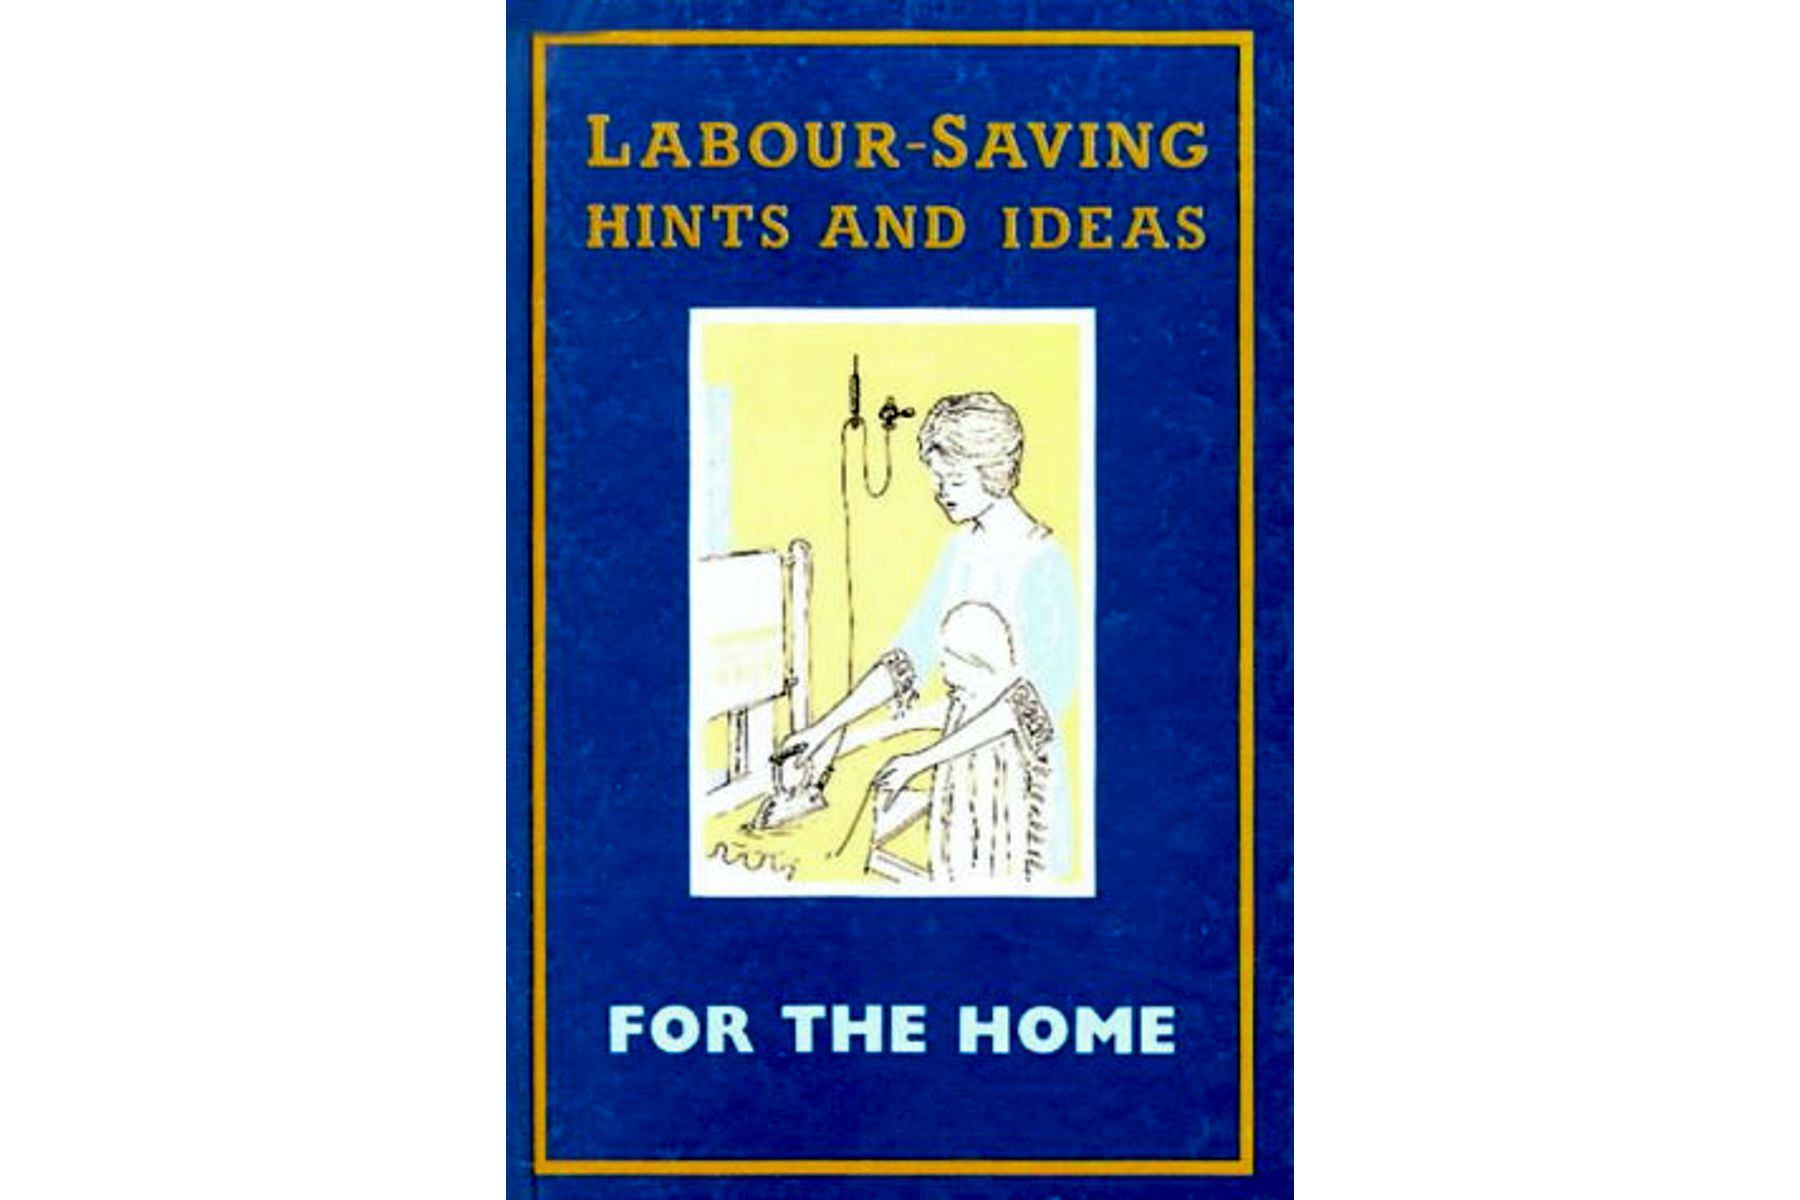 Vintage Labour-Saving Hints and Ideas for the Home